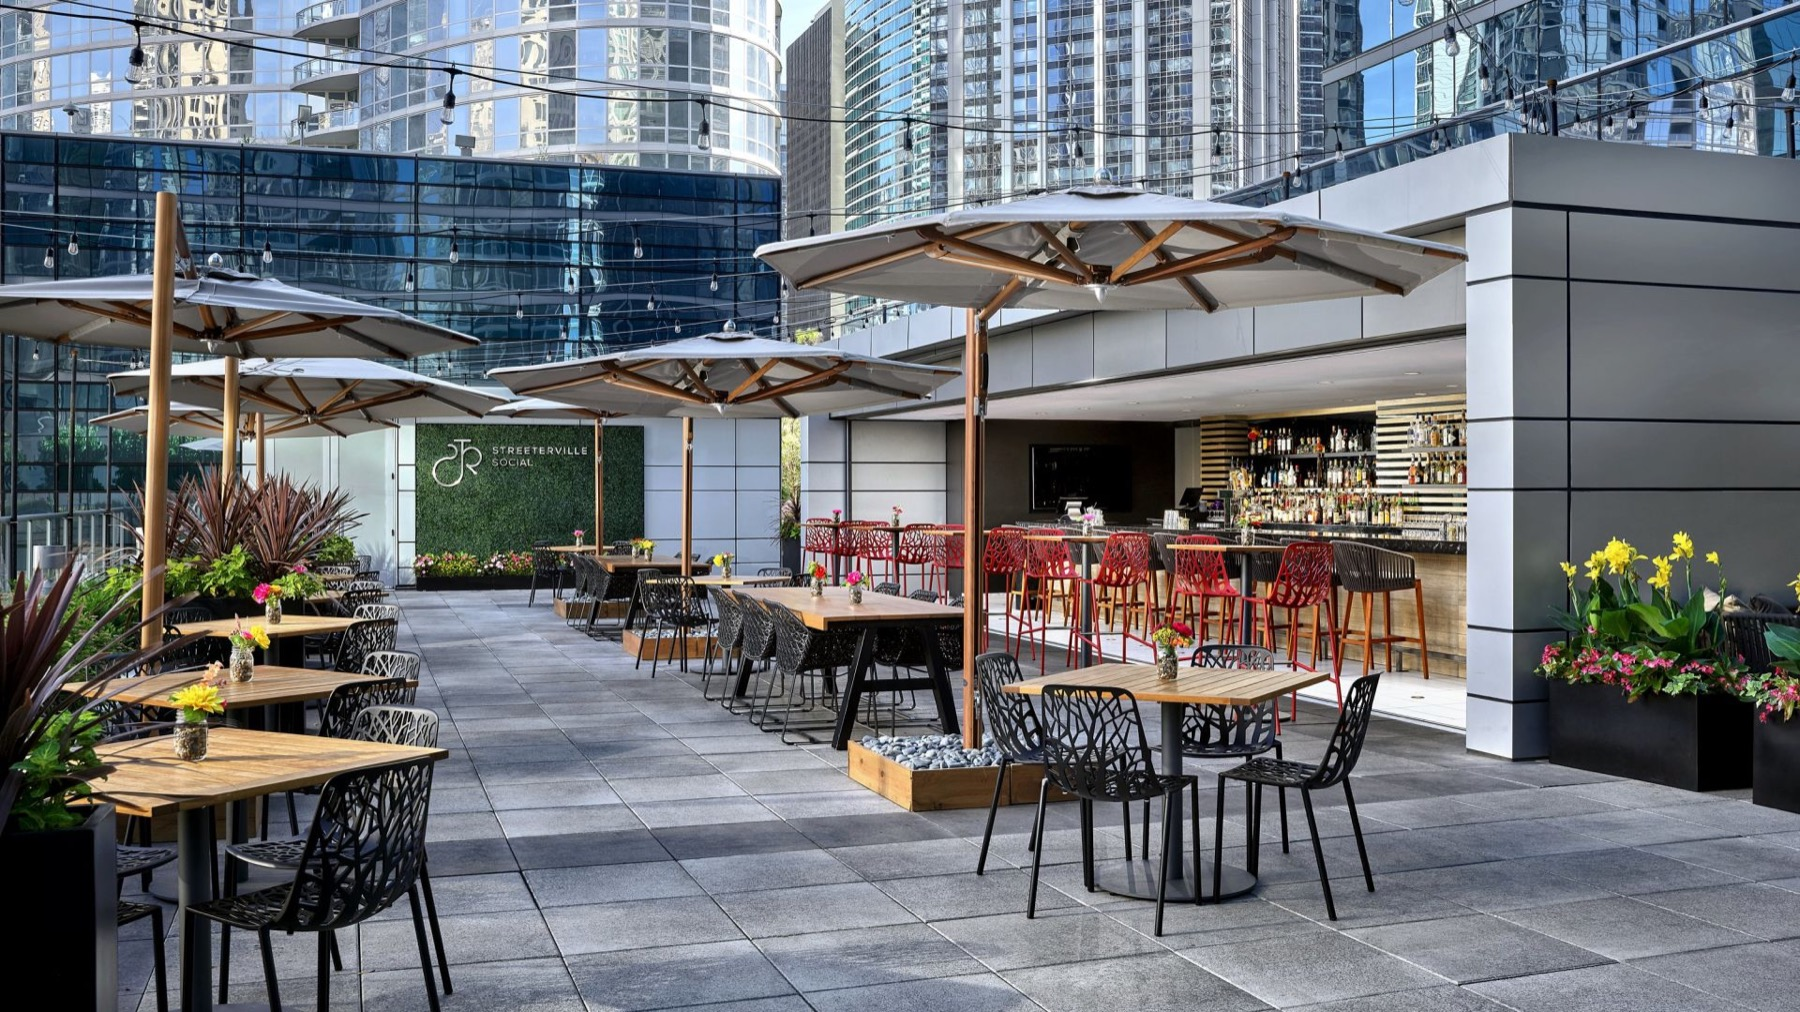 10 Chicago venues with outdoor spaces